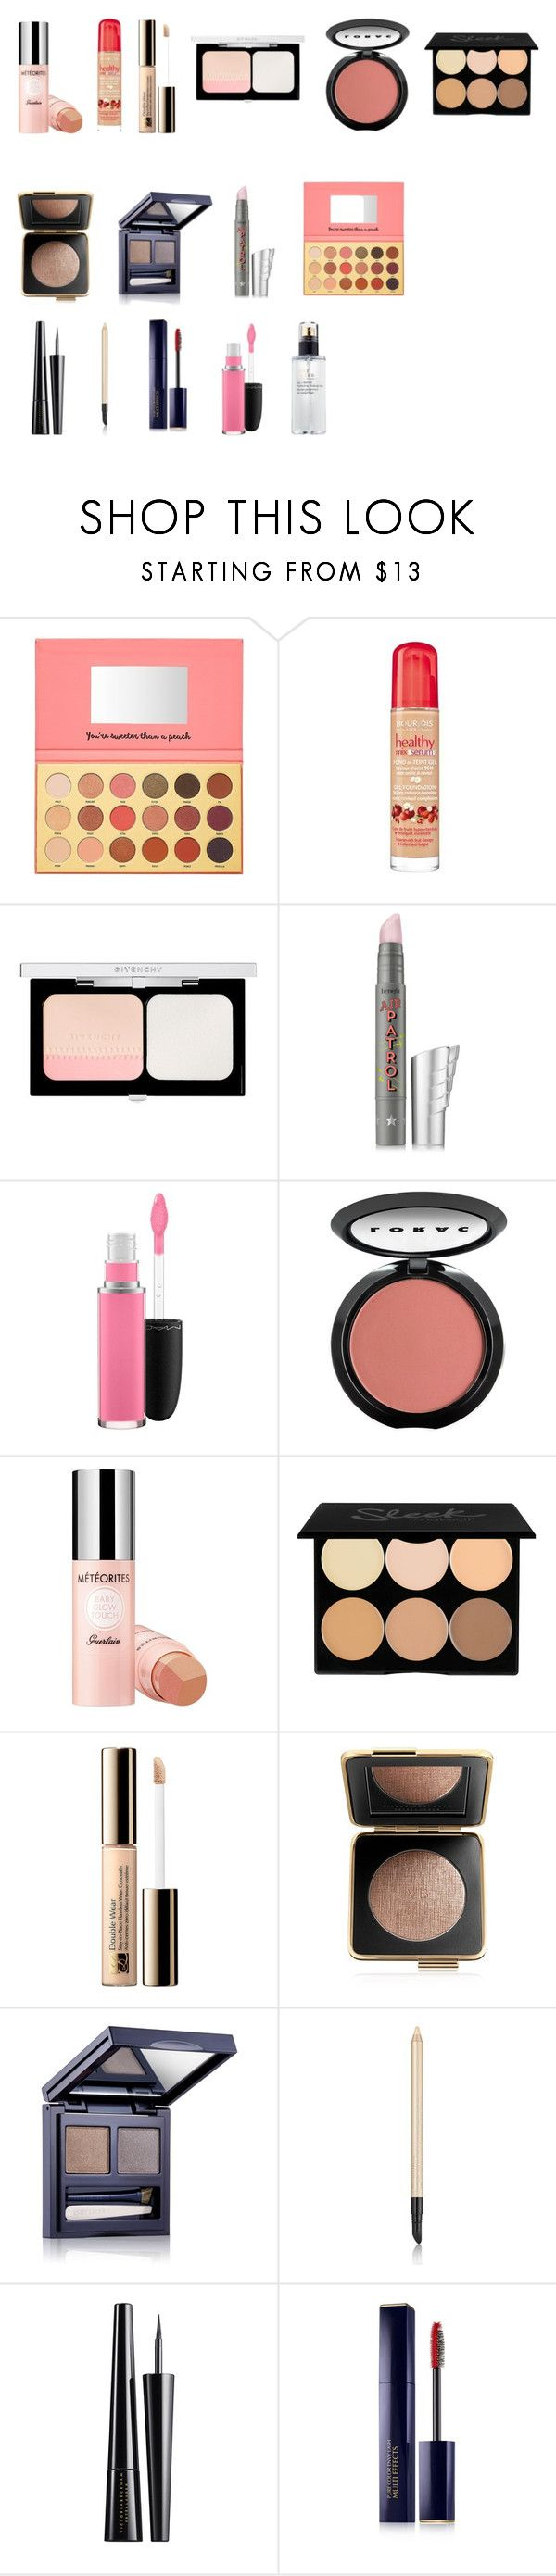 """MOTD"" by tyronewelle ❤ liked on Polyvore featuring beauty, Bourjois, Givenchy, MAC Cosmetics, LORAC, Guerlain and Estée Lauder"